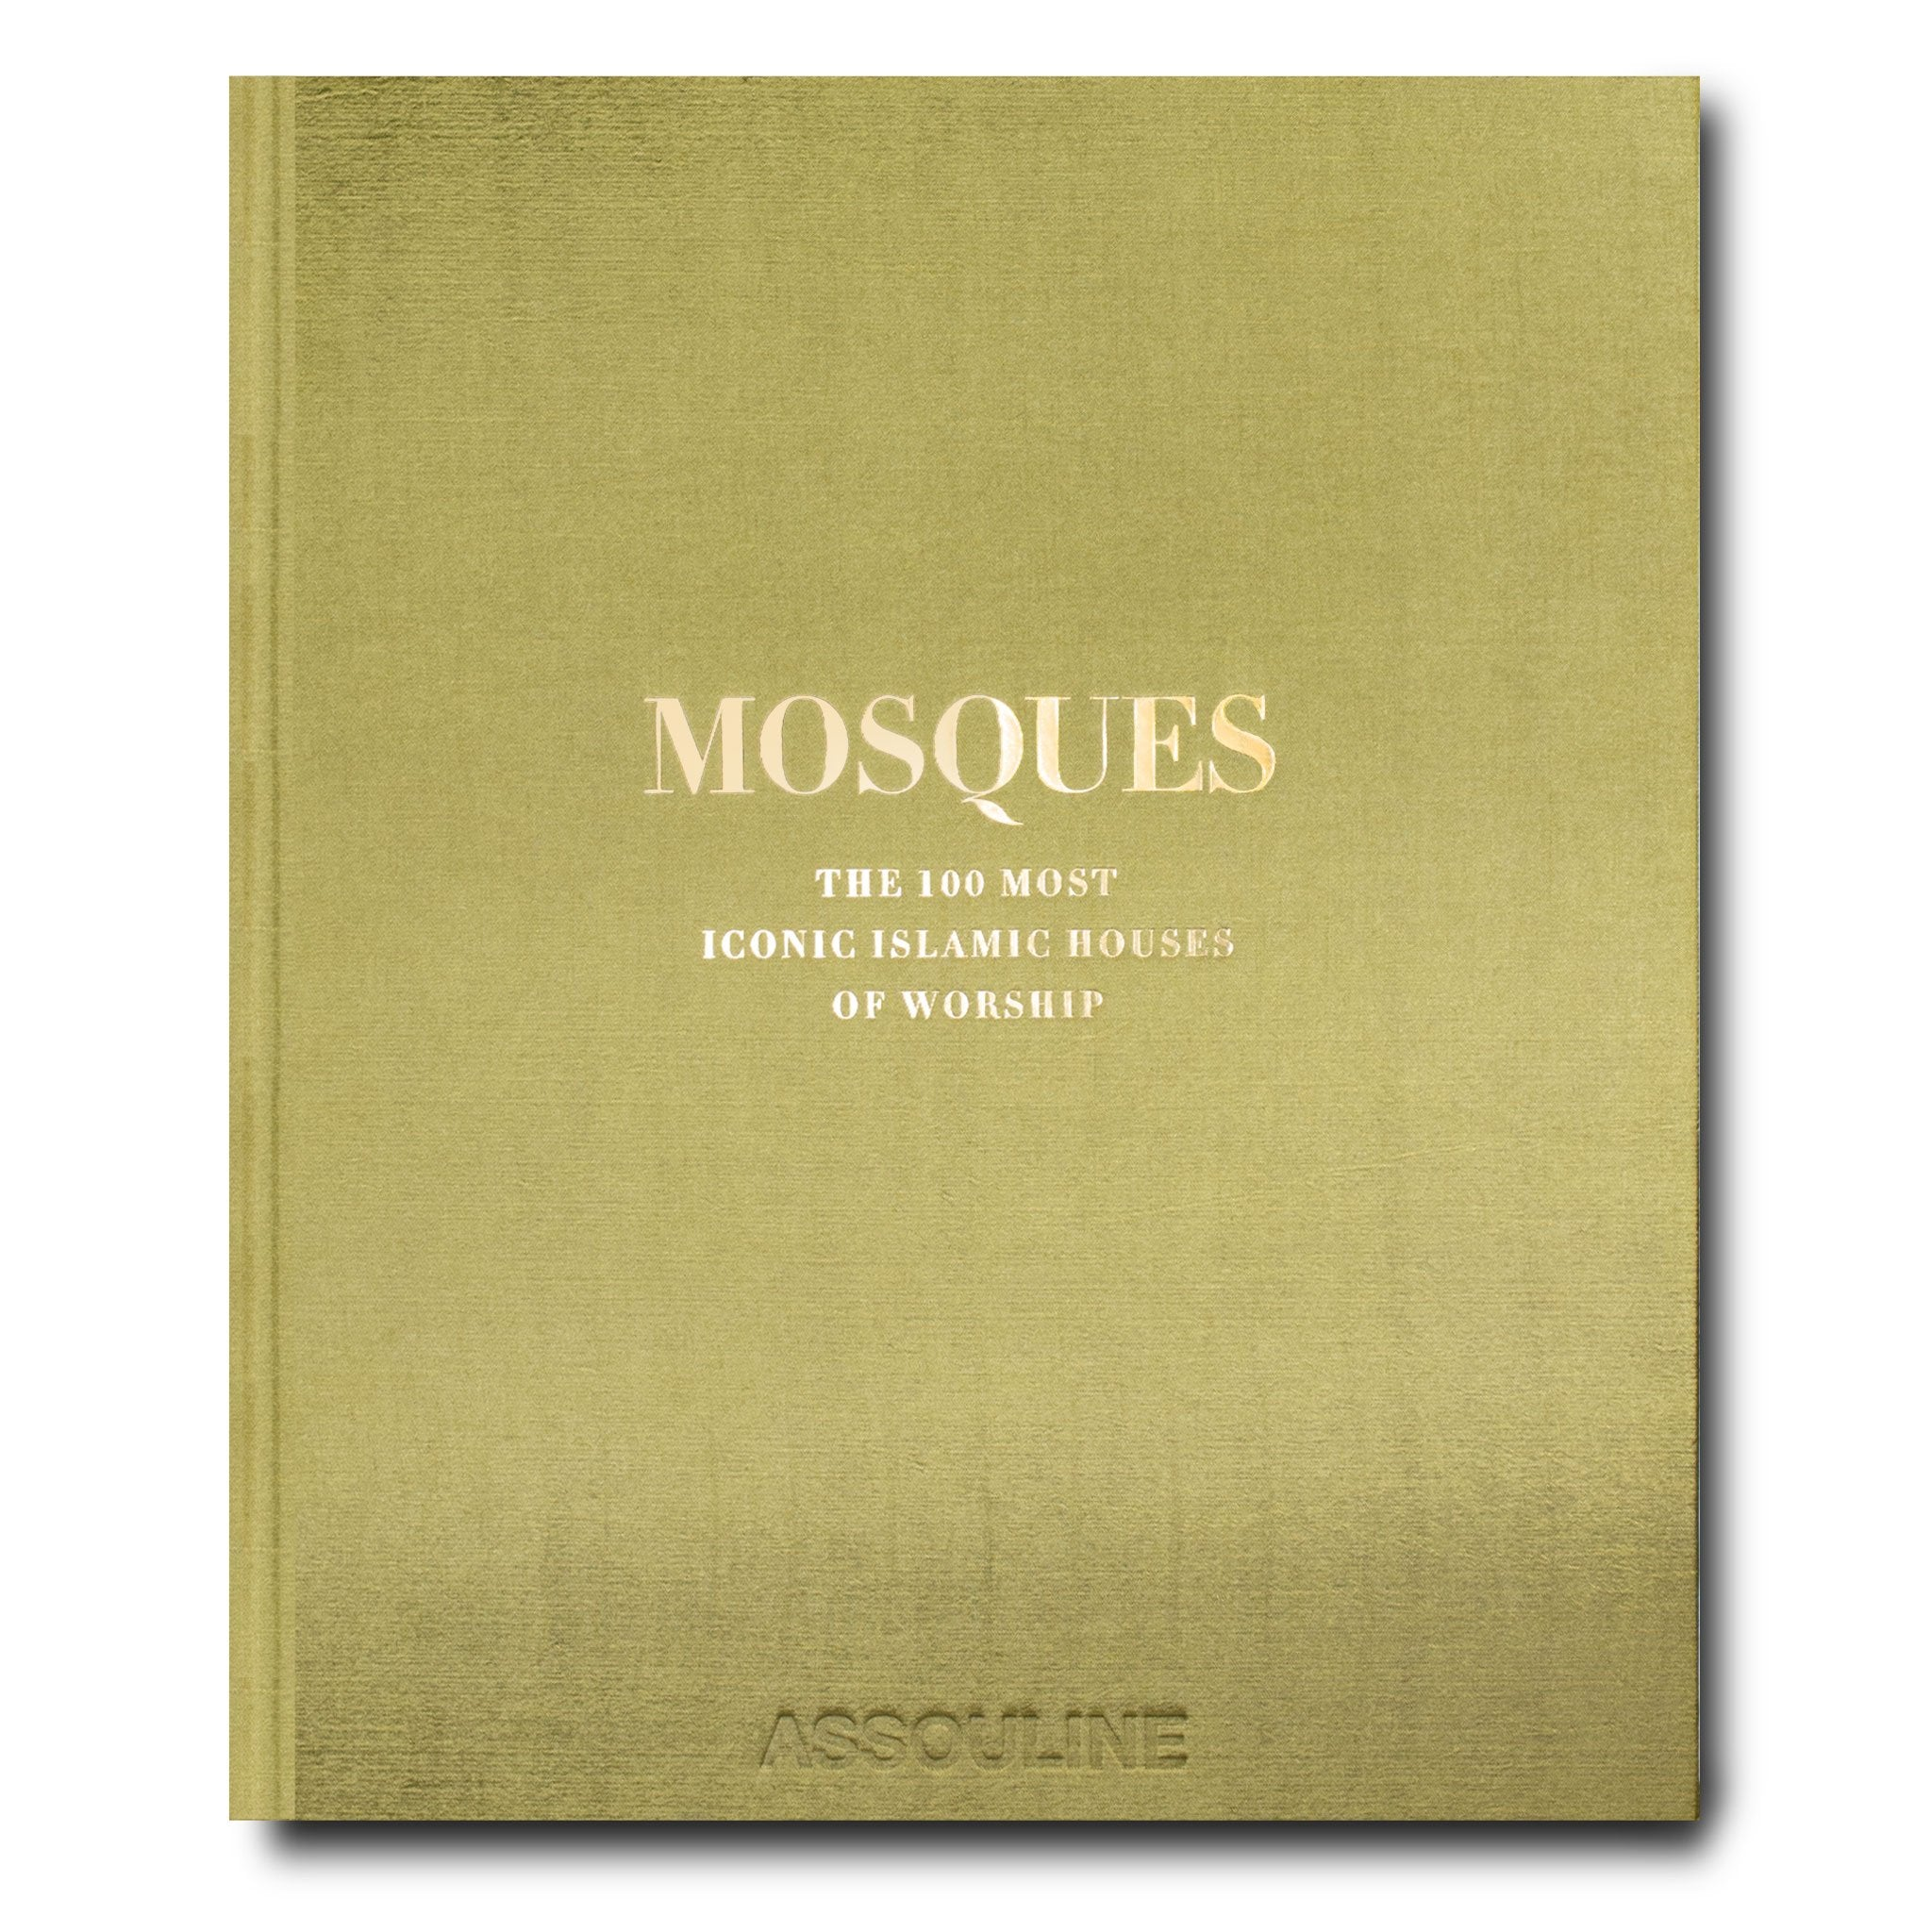 Mosques: The 100 Most Iconic Islamic Houses of Worship (Special Edition)